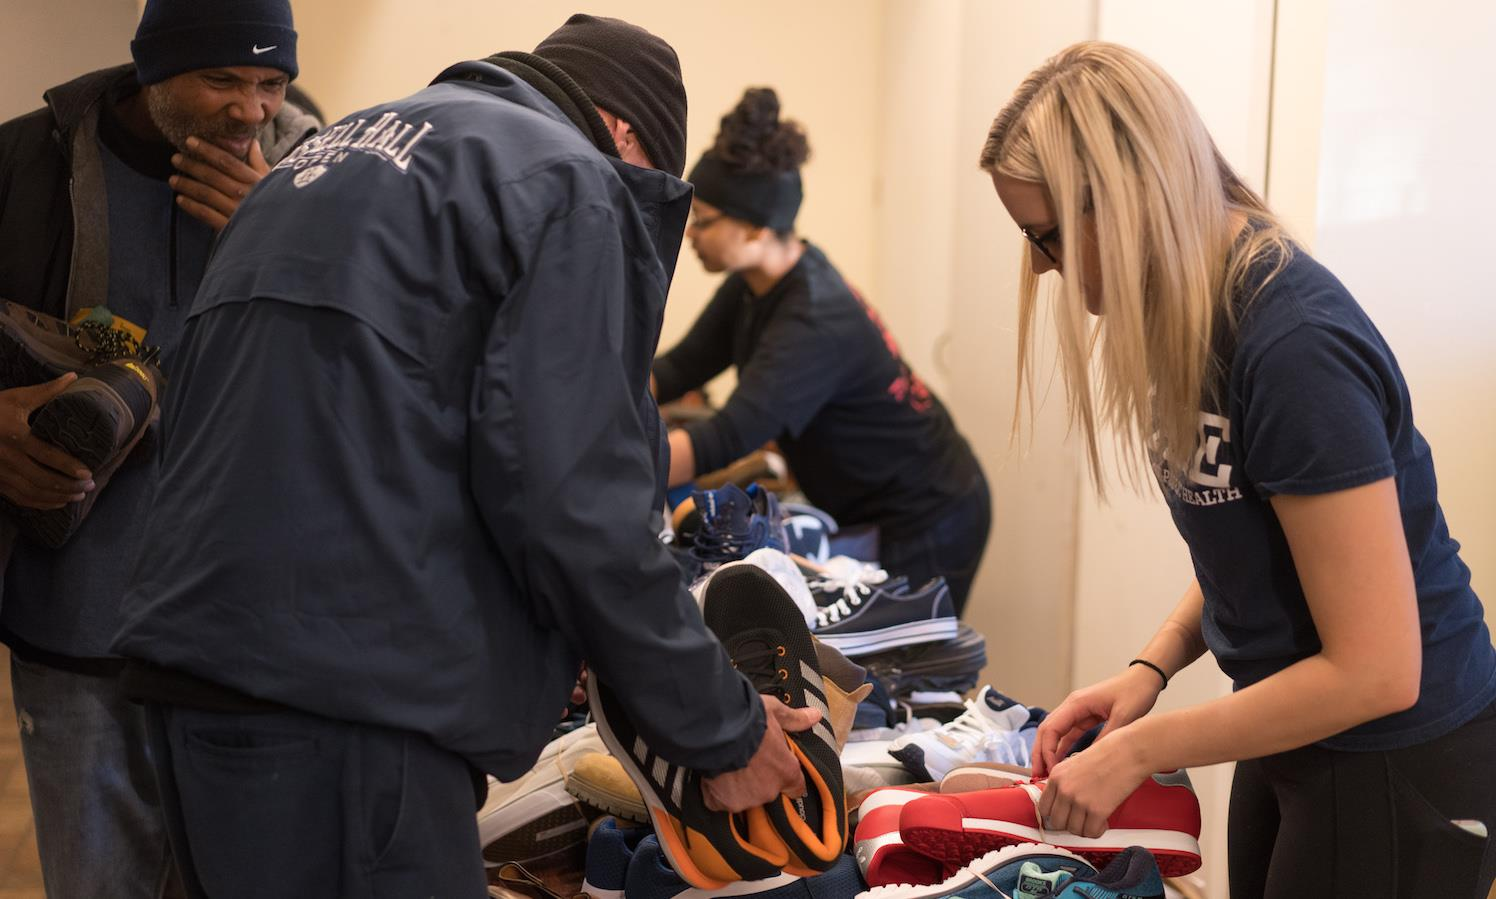 Two men selecting sneakers and a student helping them.